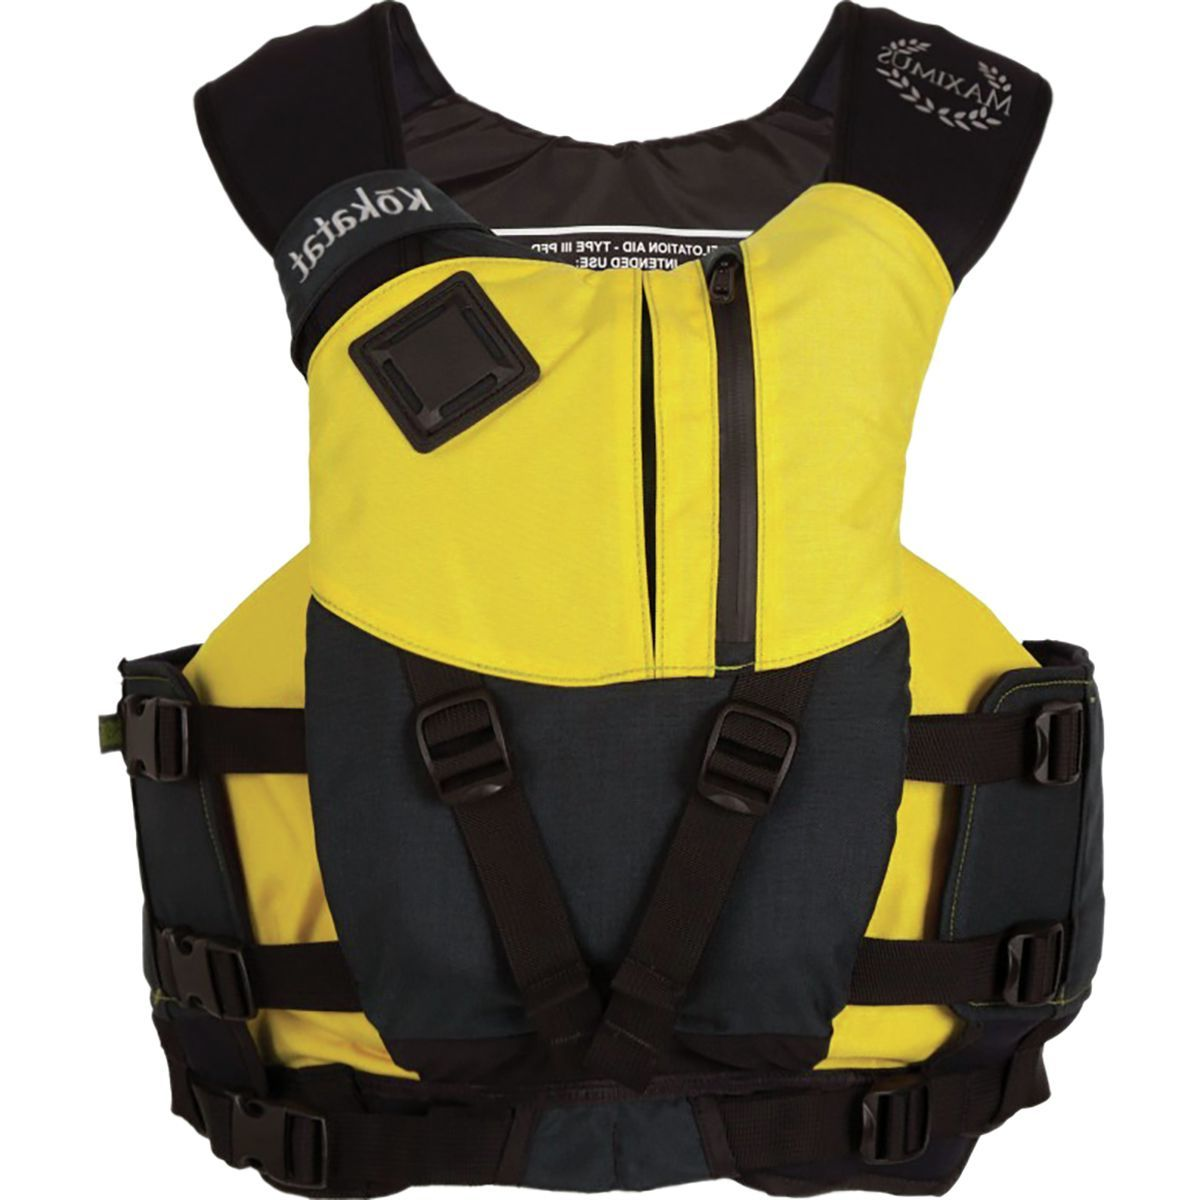 Kokatat Maximus Personal Flotation Device - Men's